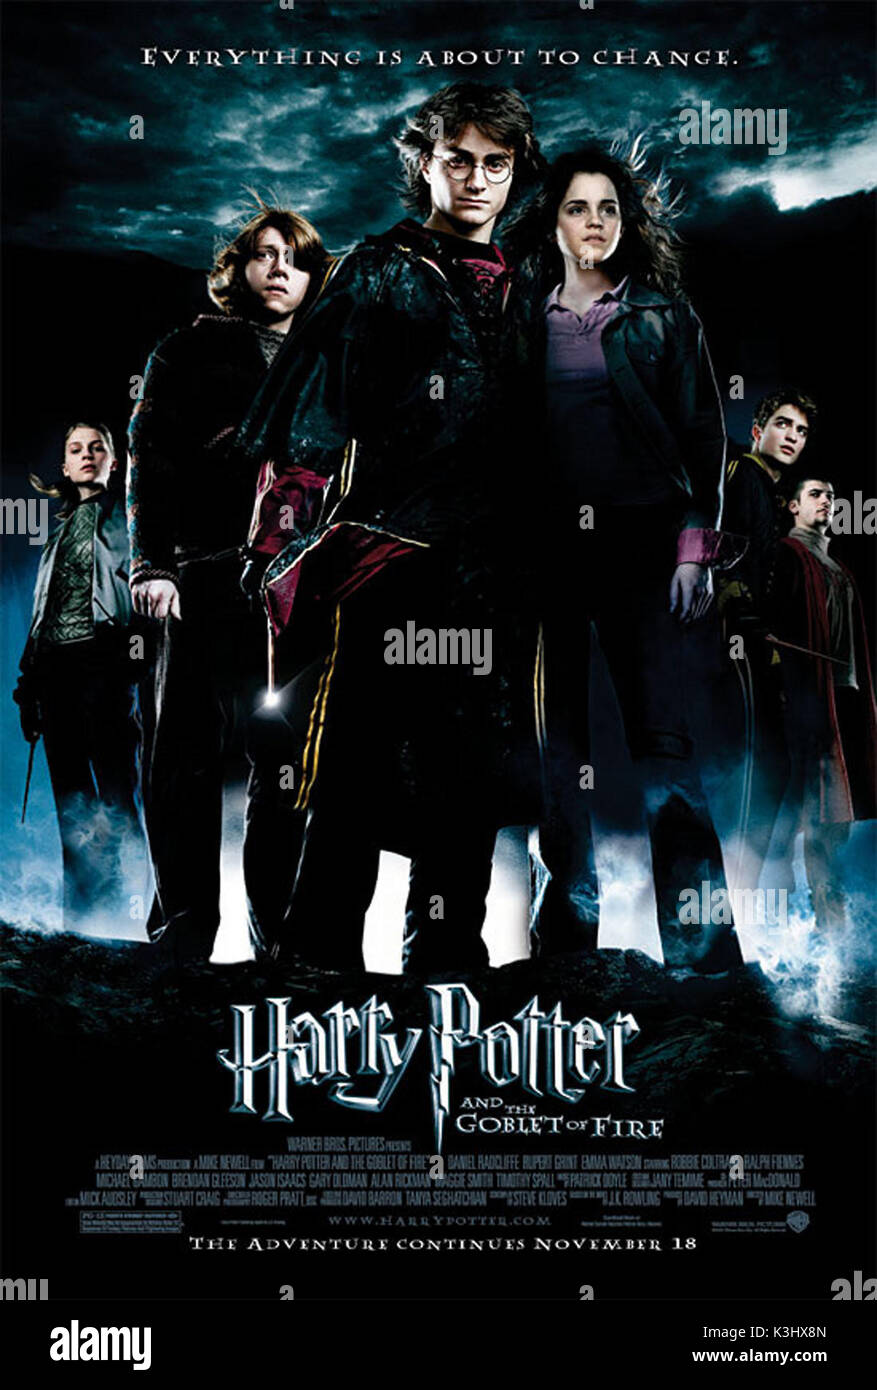 HARRY POTTER AND THE GOBLET OF FIRE CLEMENCE POESY as Fleur Delacour, RUPERT GRINT as Ron Weasley, EMMA WATSON as Hermione Granger, DANIEL RADCLIFFE as Harry Potter, ROBERT PATTINSON as Cedric Diggory, STANISLAV IANEVSKI as Viktor Krum     Date: 2005 - Stock Image